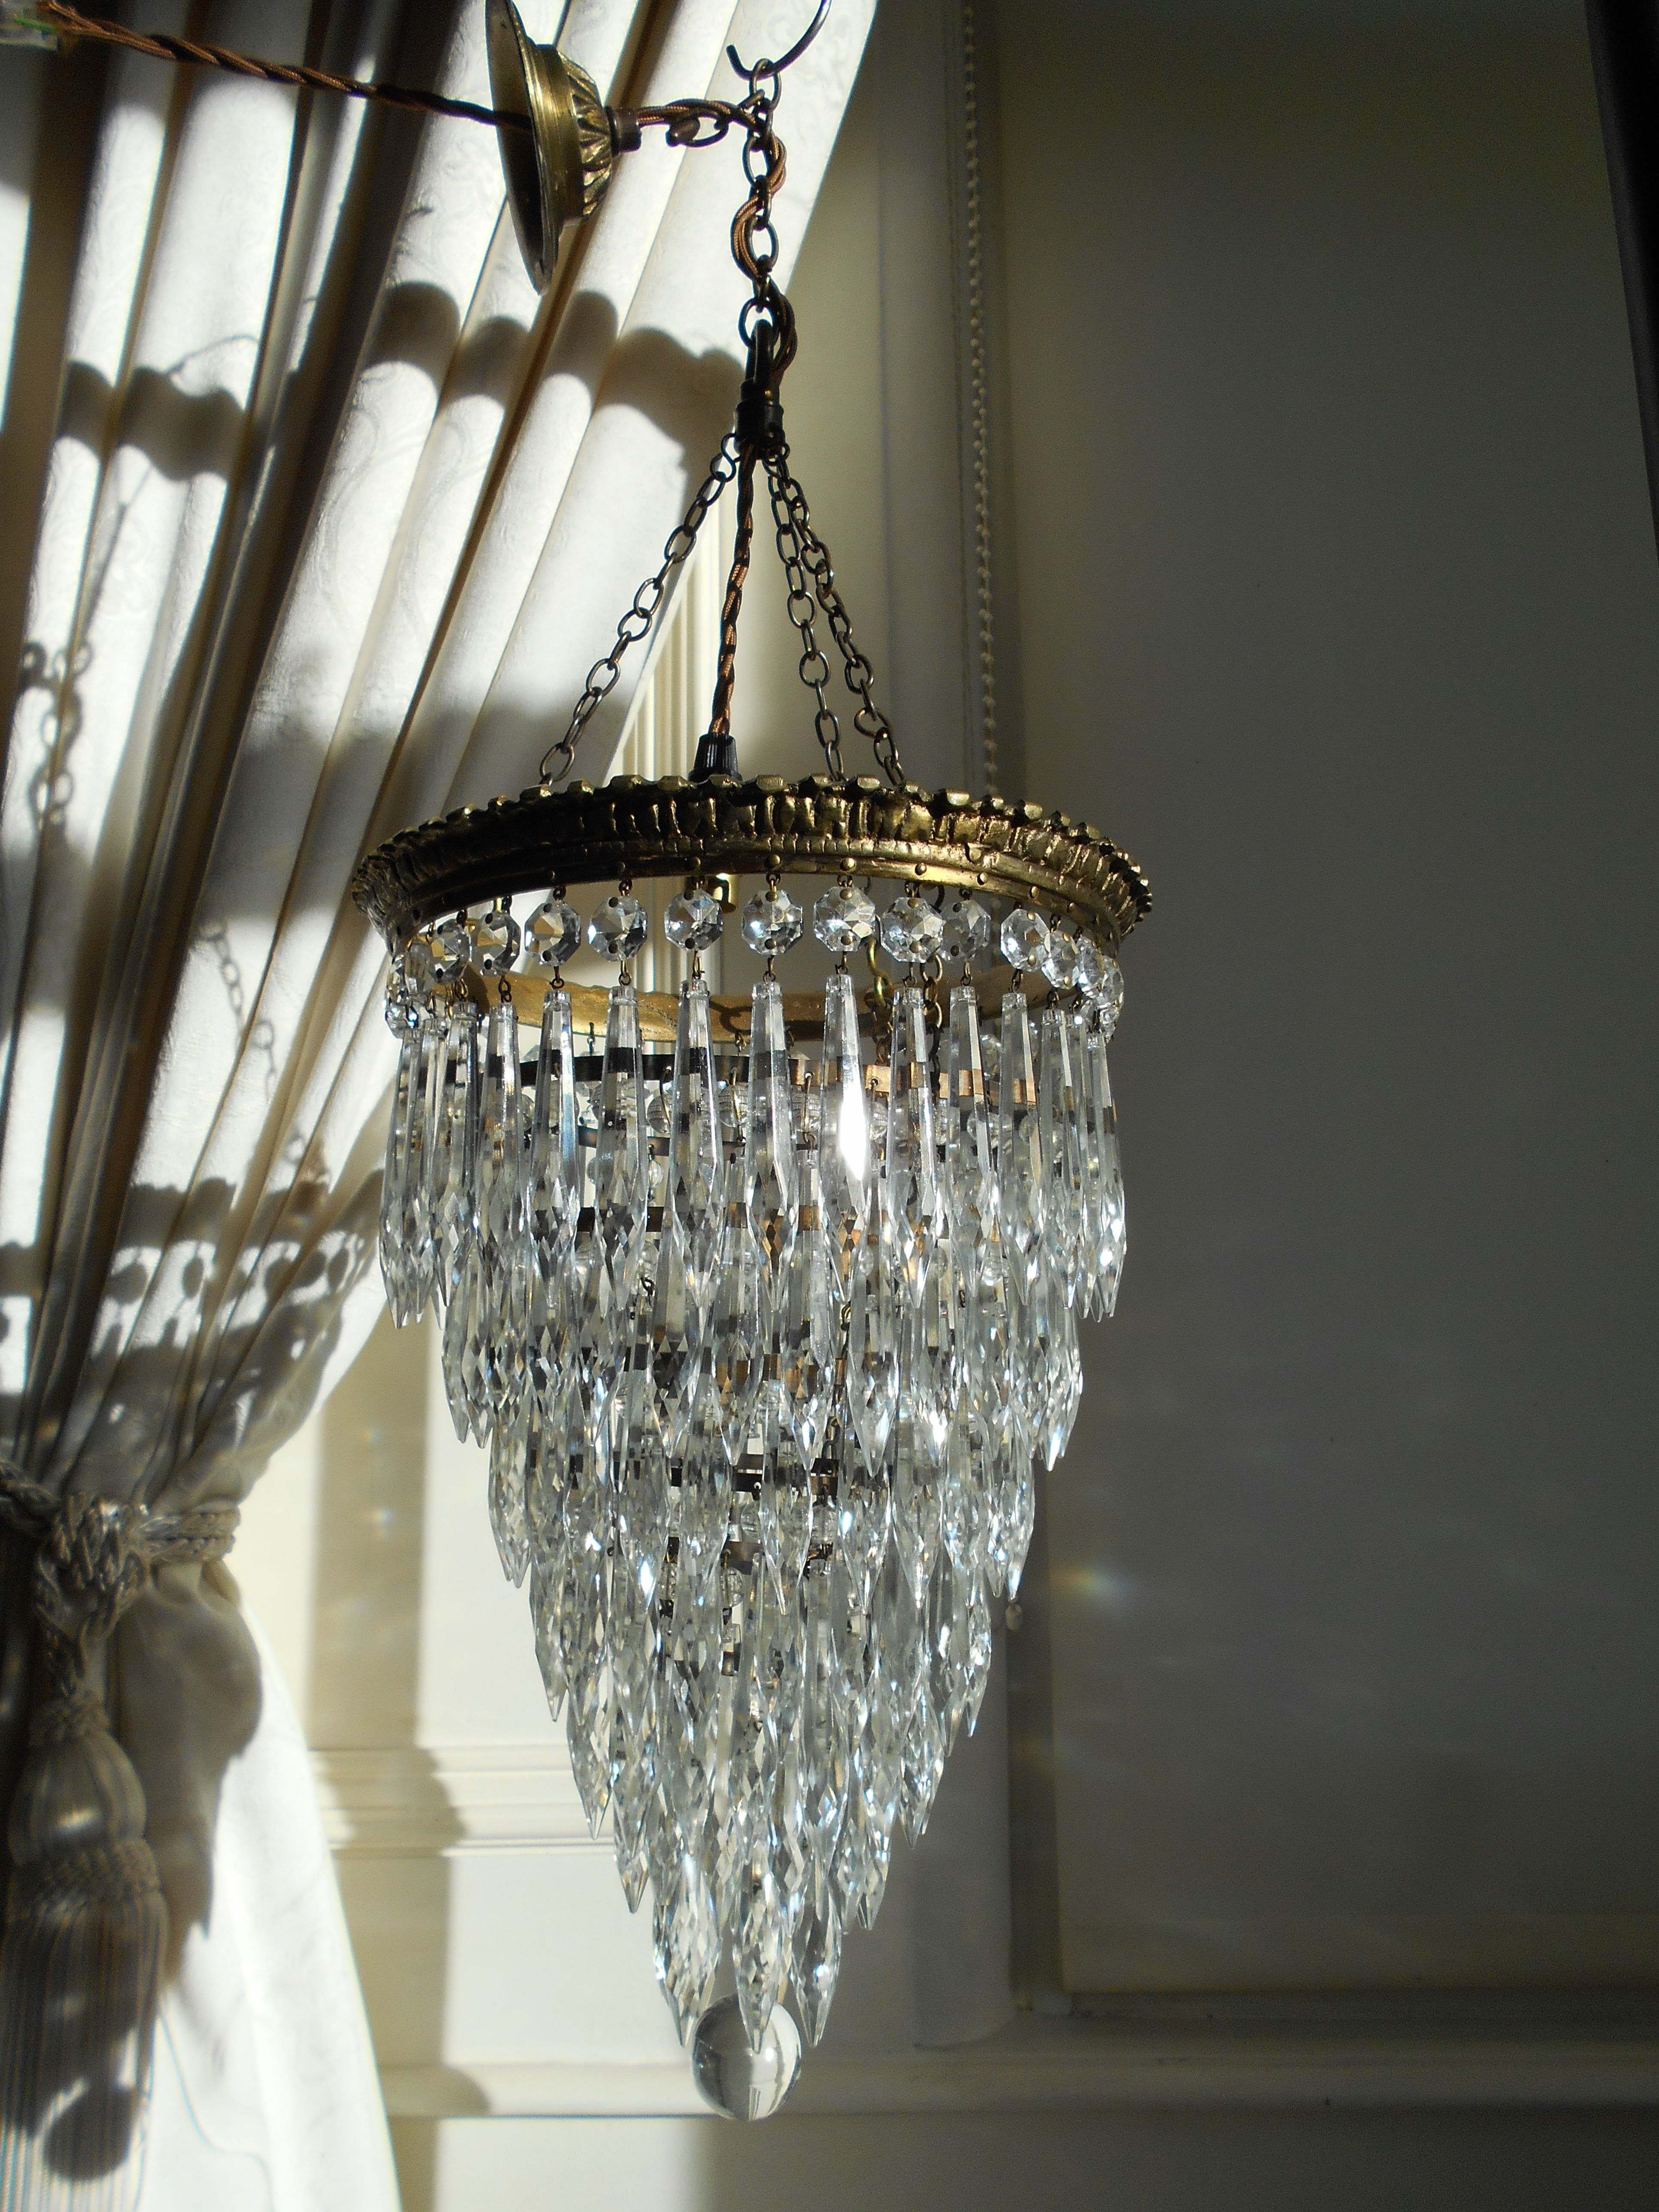 Mckamey 4 Light Crystal Chandeliers Within Fashionable Vintage French 7 Tier Crystal Waterfall Chandelier (View 15 of 20)